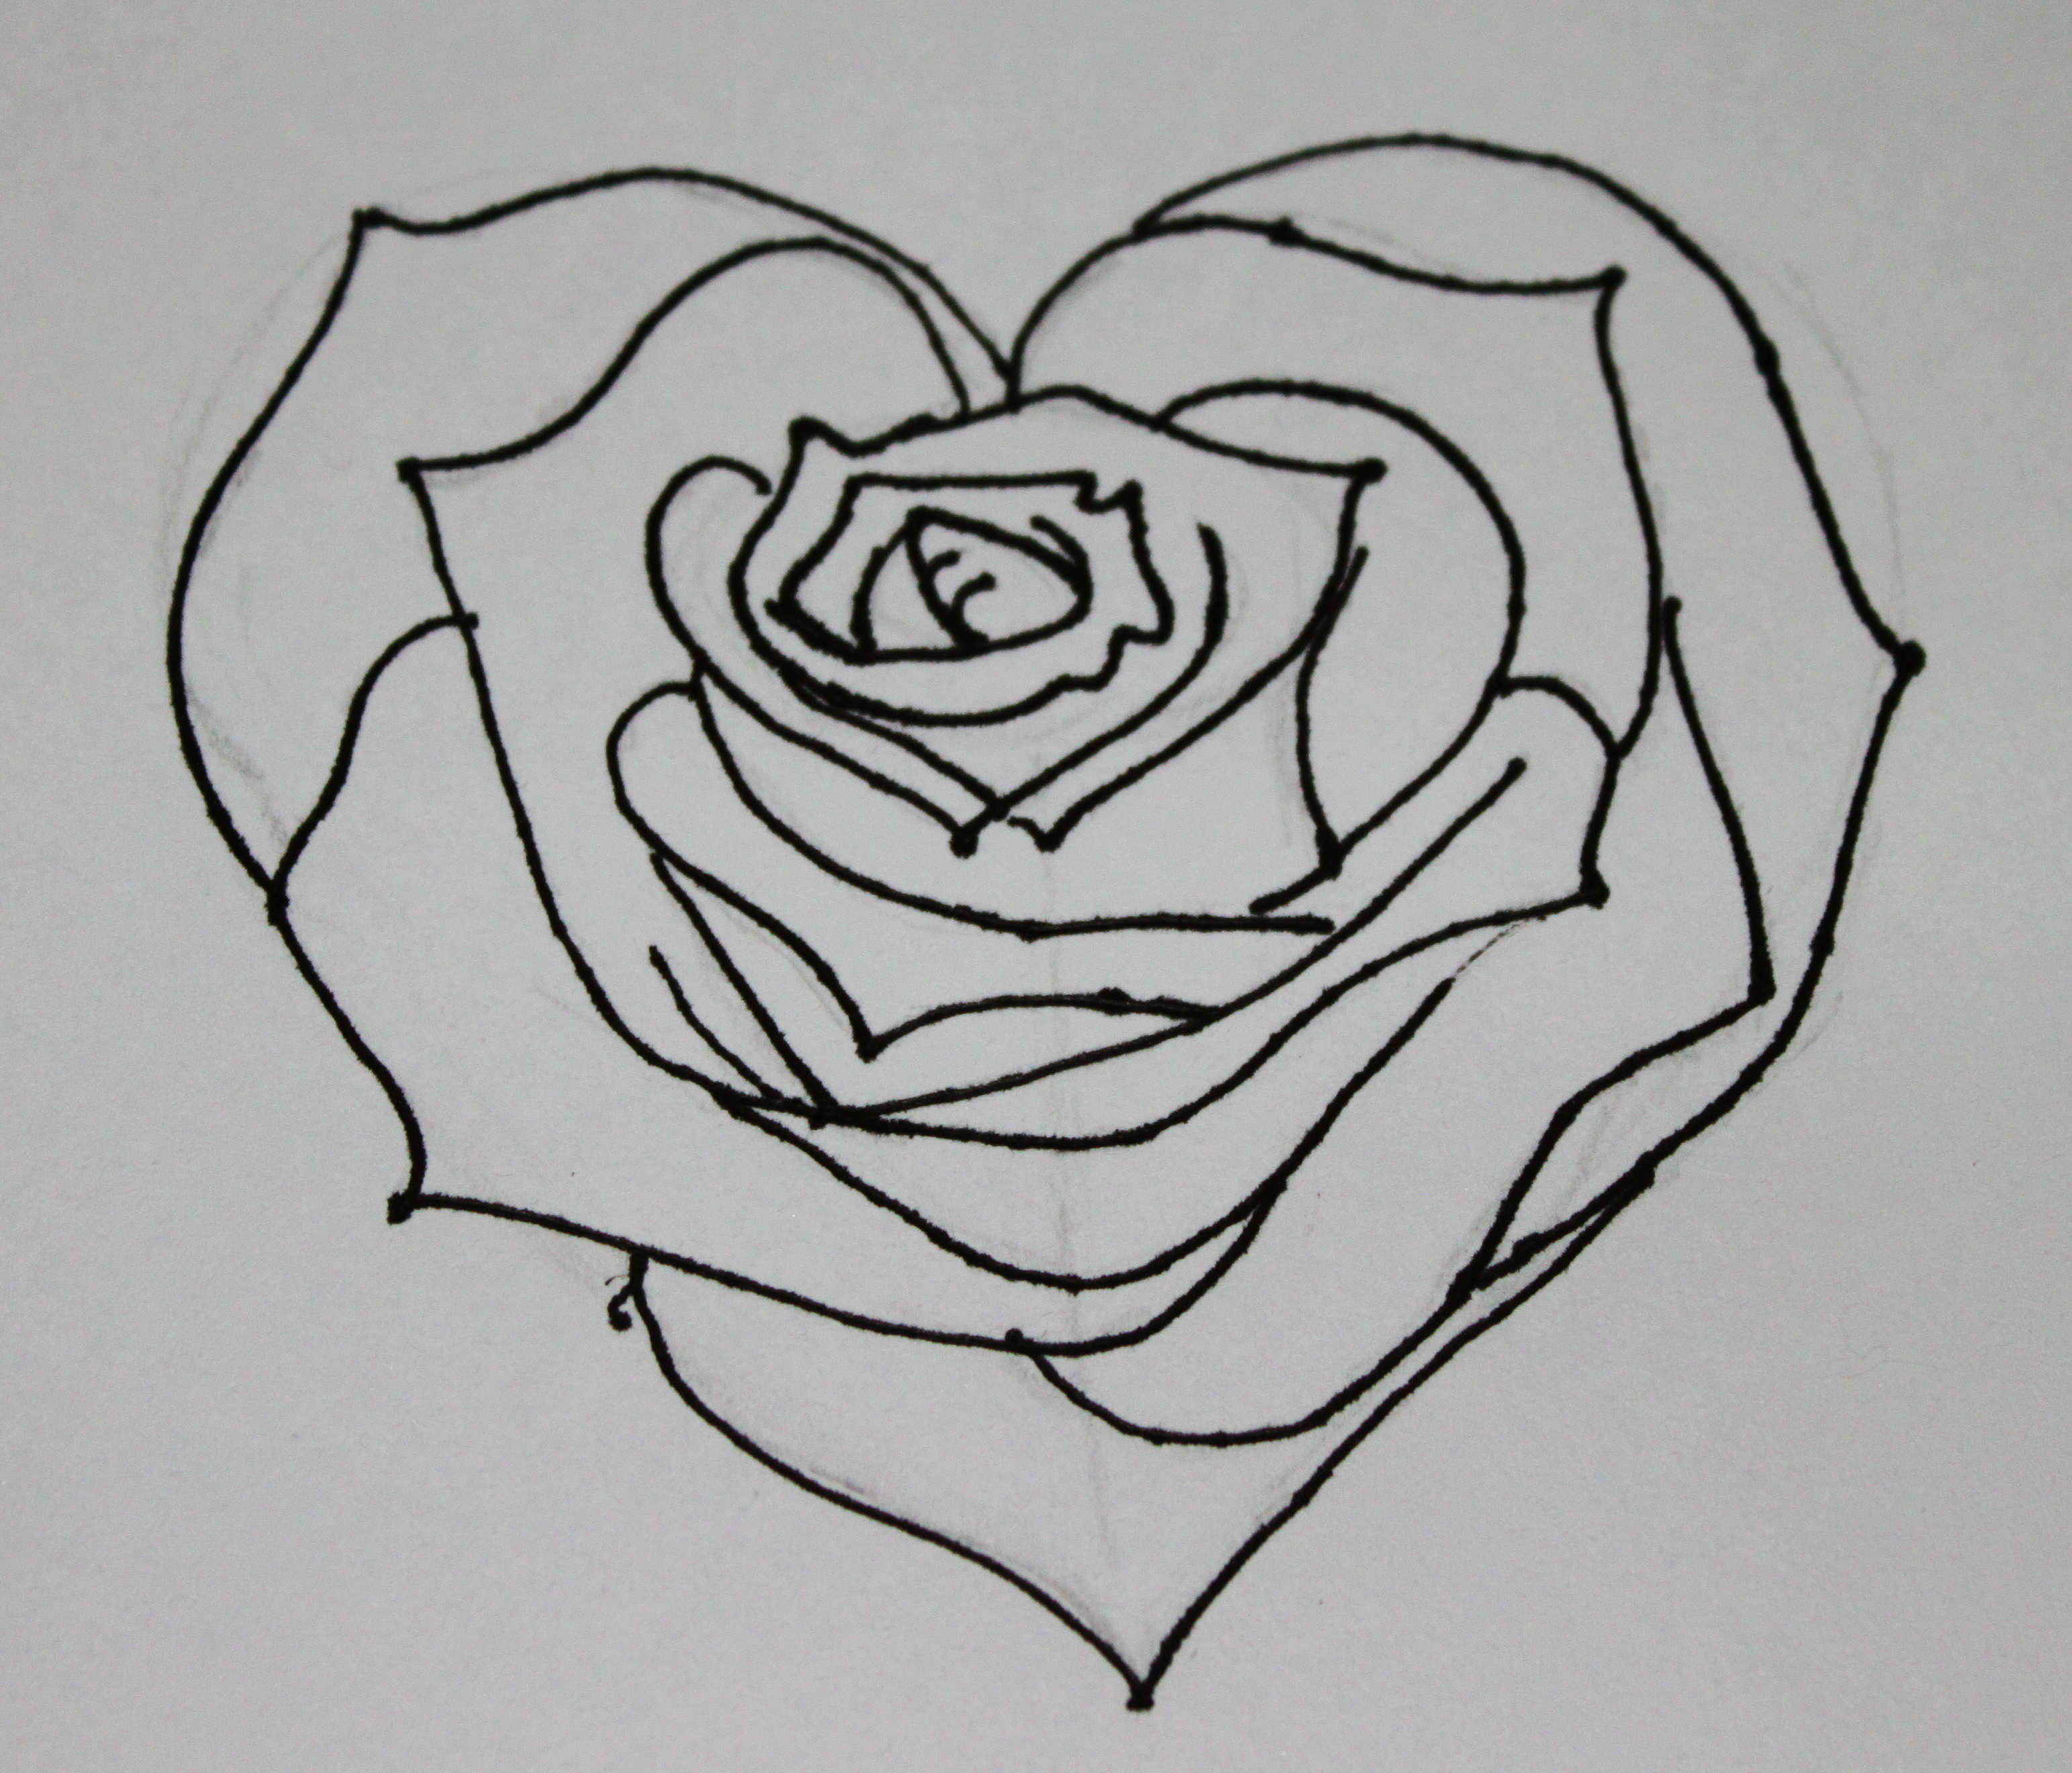 Drawn rose rose banner With Of Download Art Heart